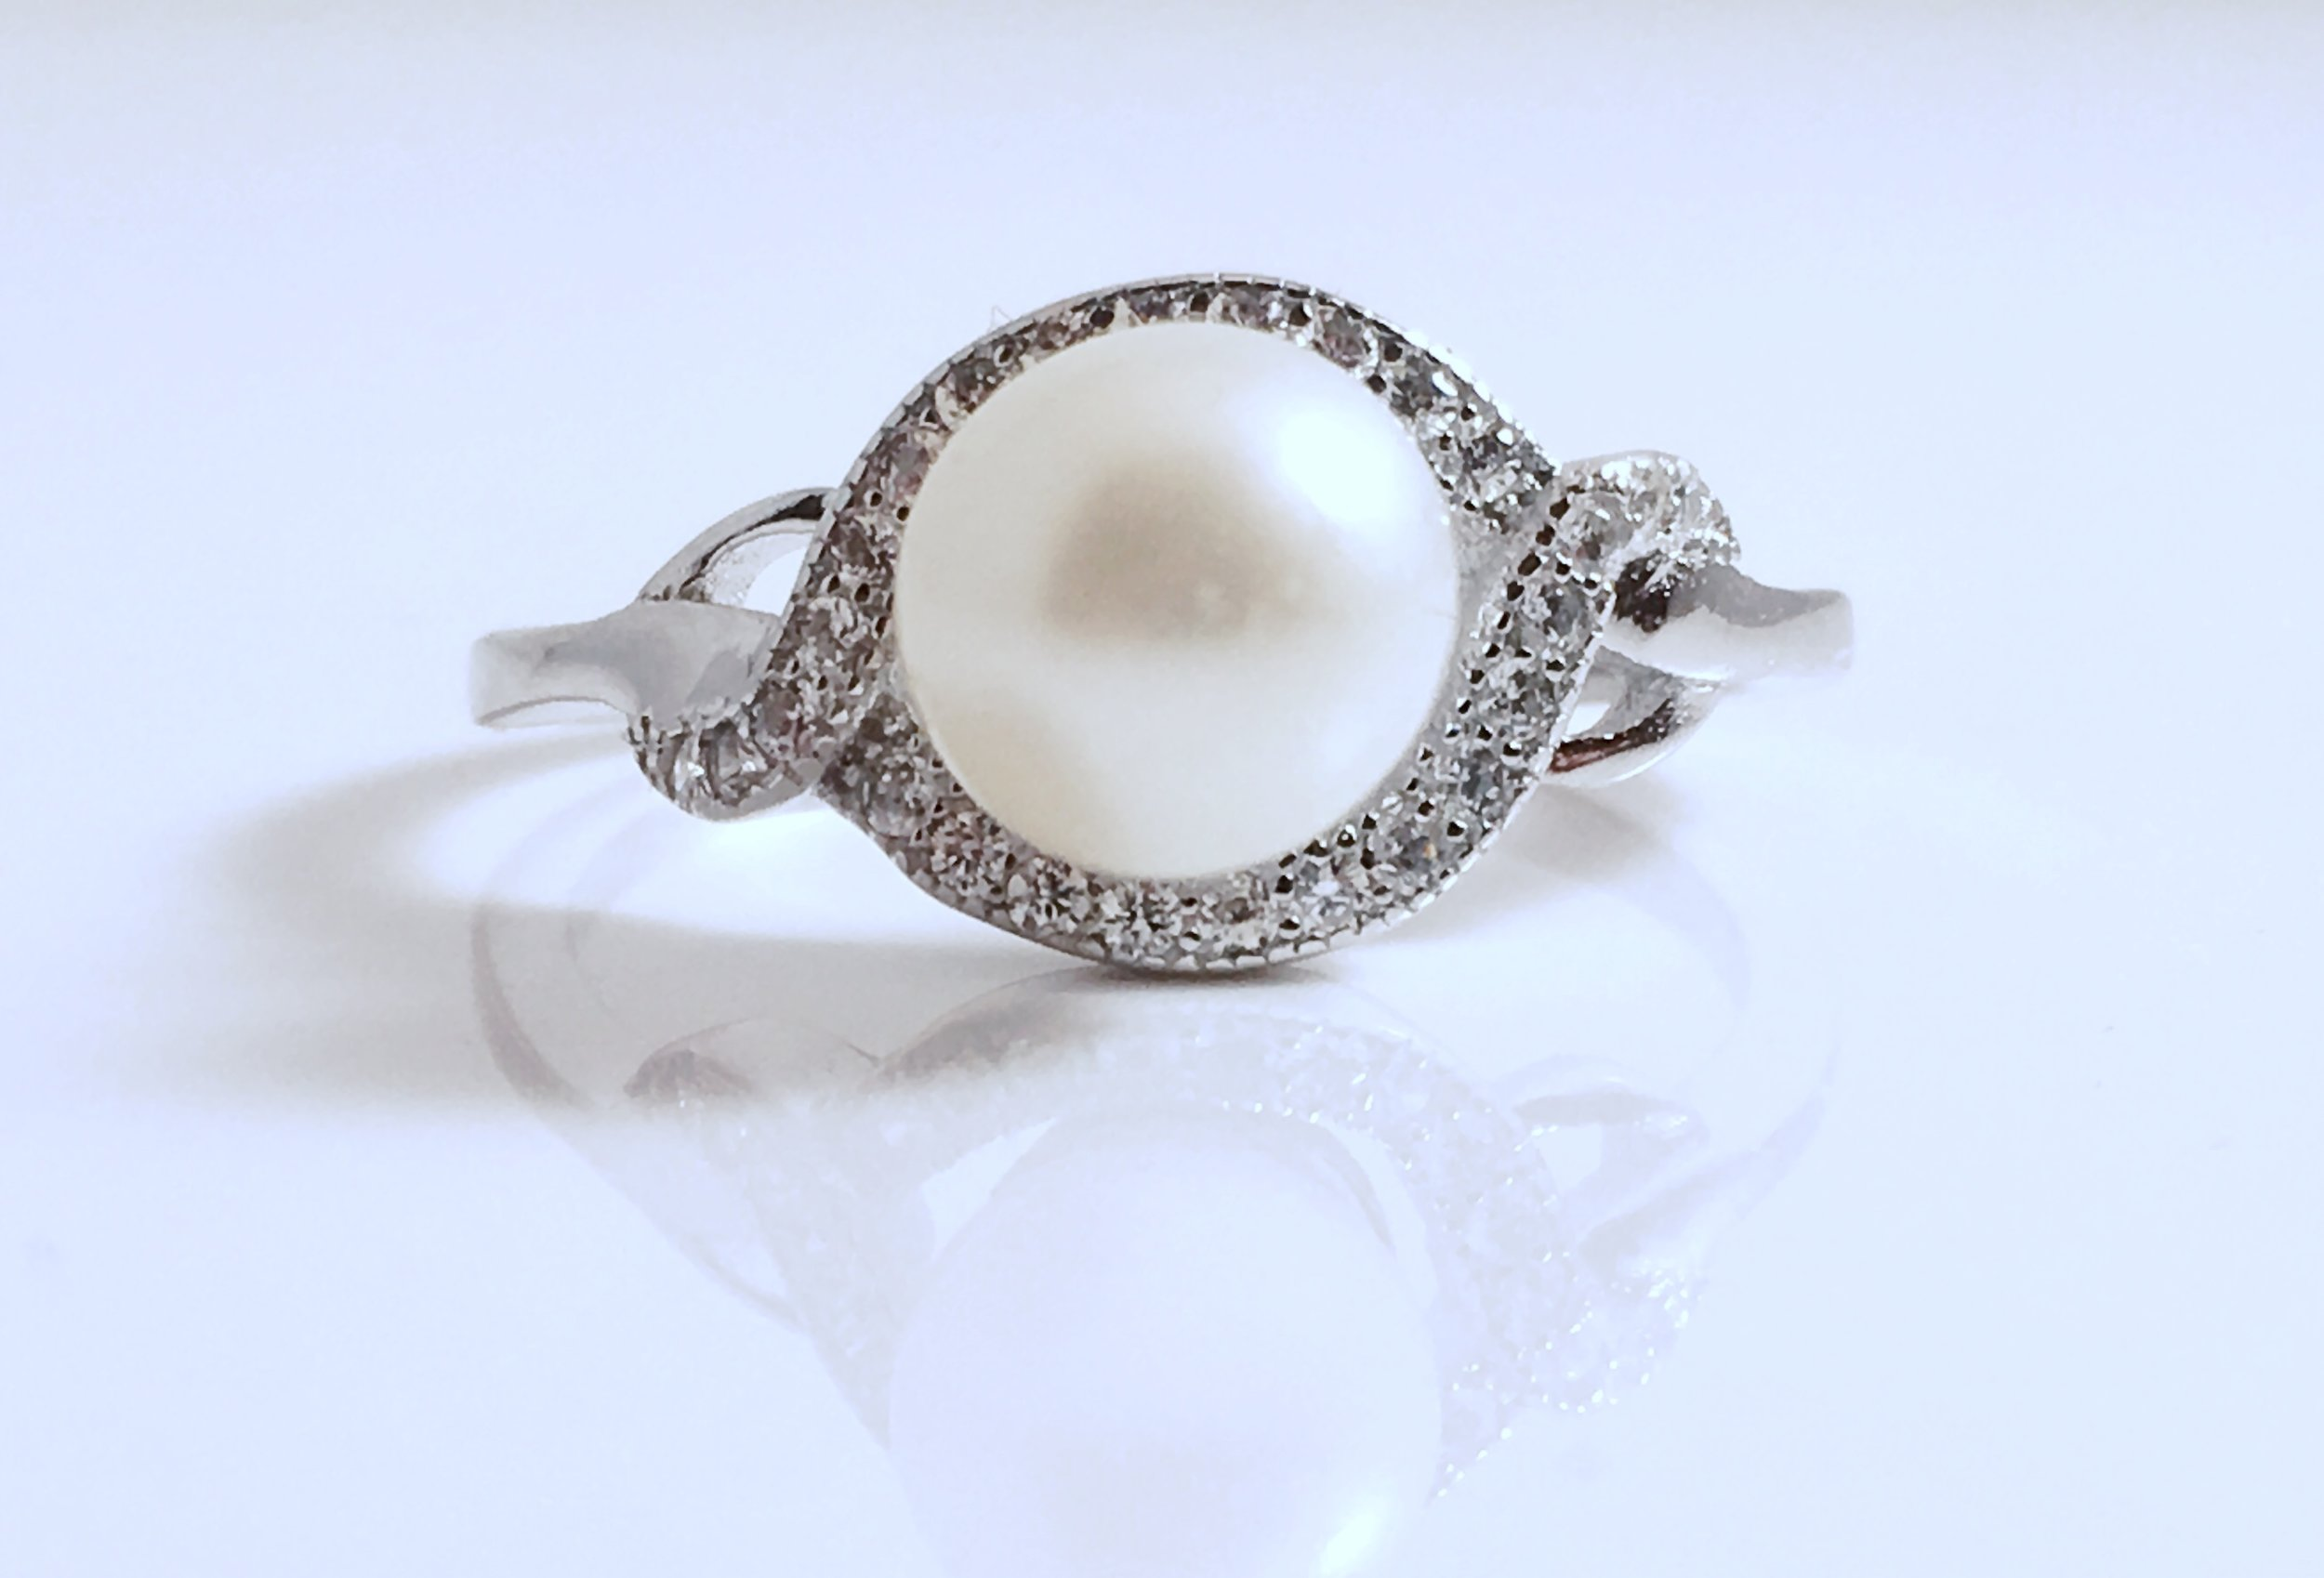 Rings and Earrings - Mount Your Beautiful PearlSo Everyone Can See!